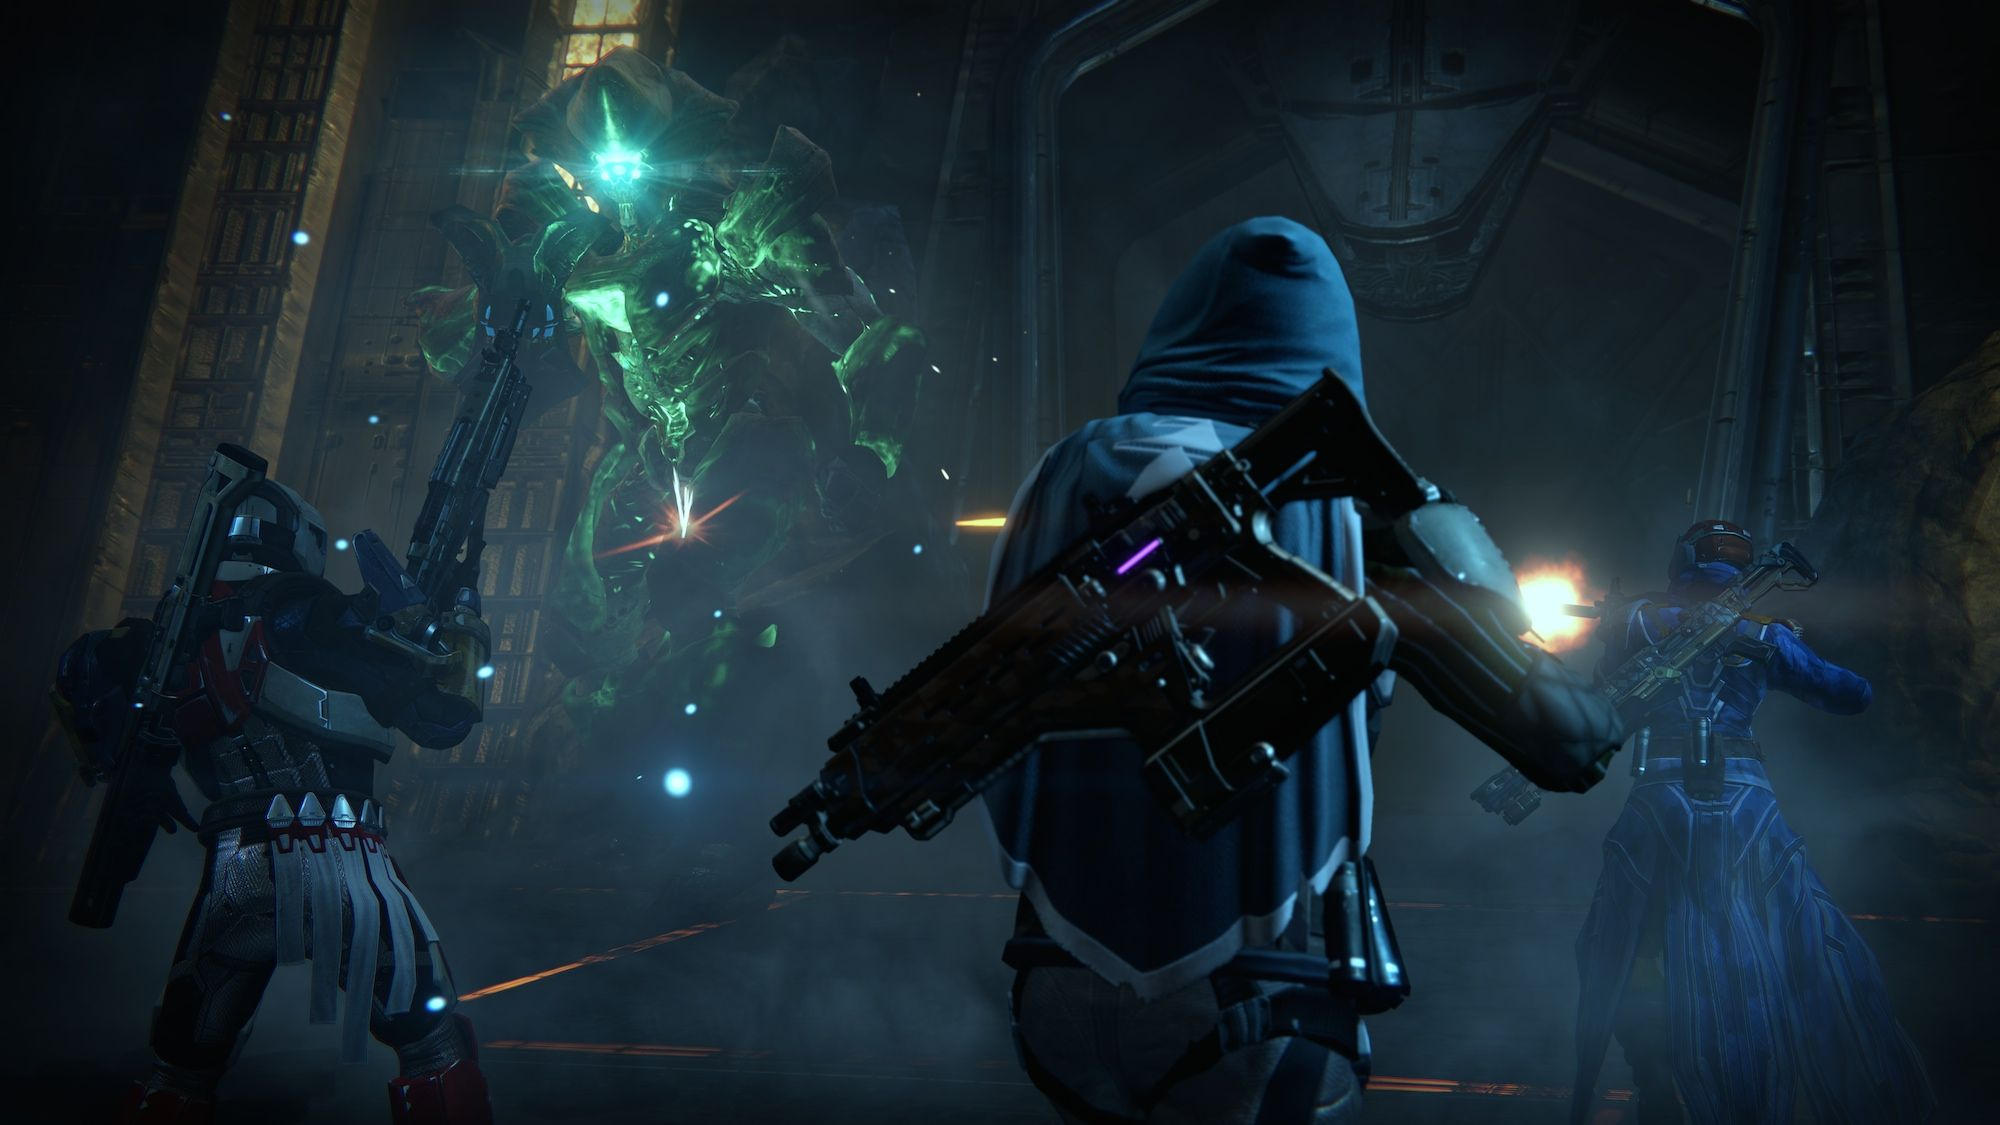 Pin by Madison on Geeks/Games Destiny, Bungie, First